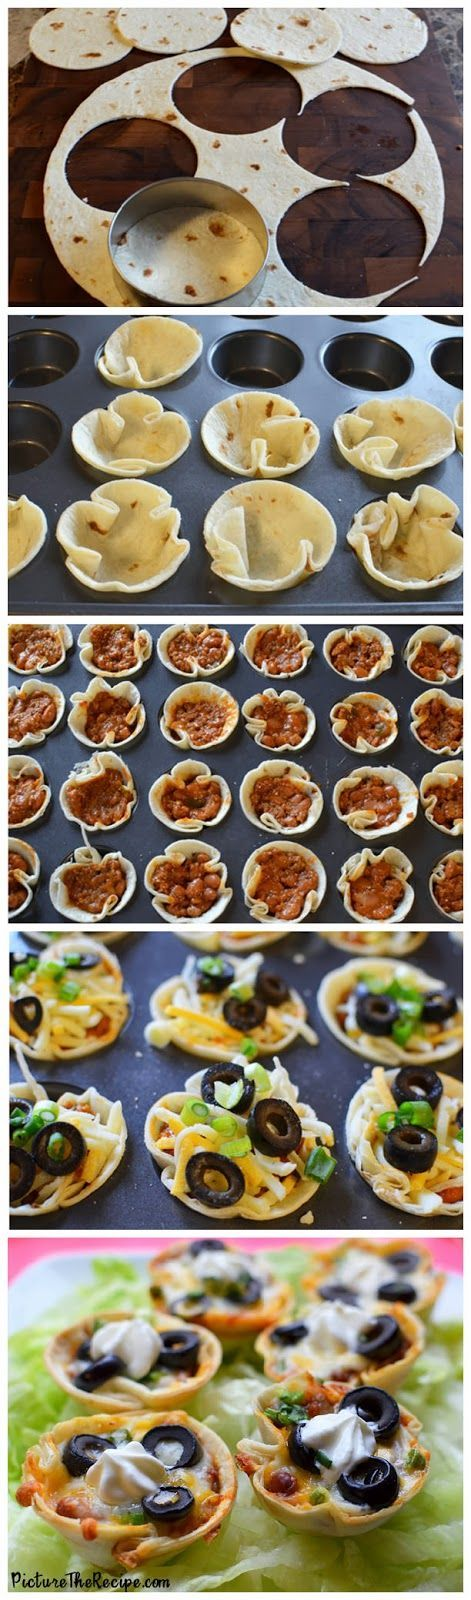 Mini Mexican Pizzas - Truelifekitchen